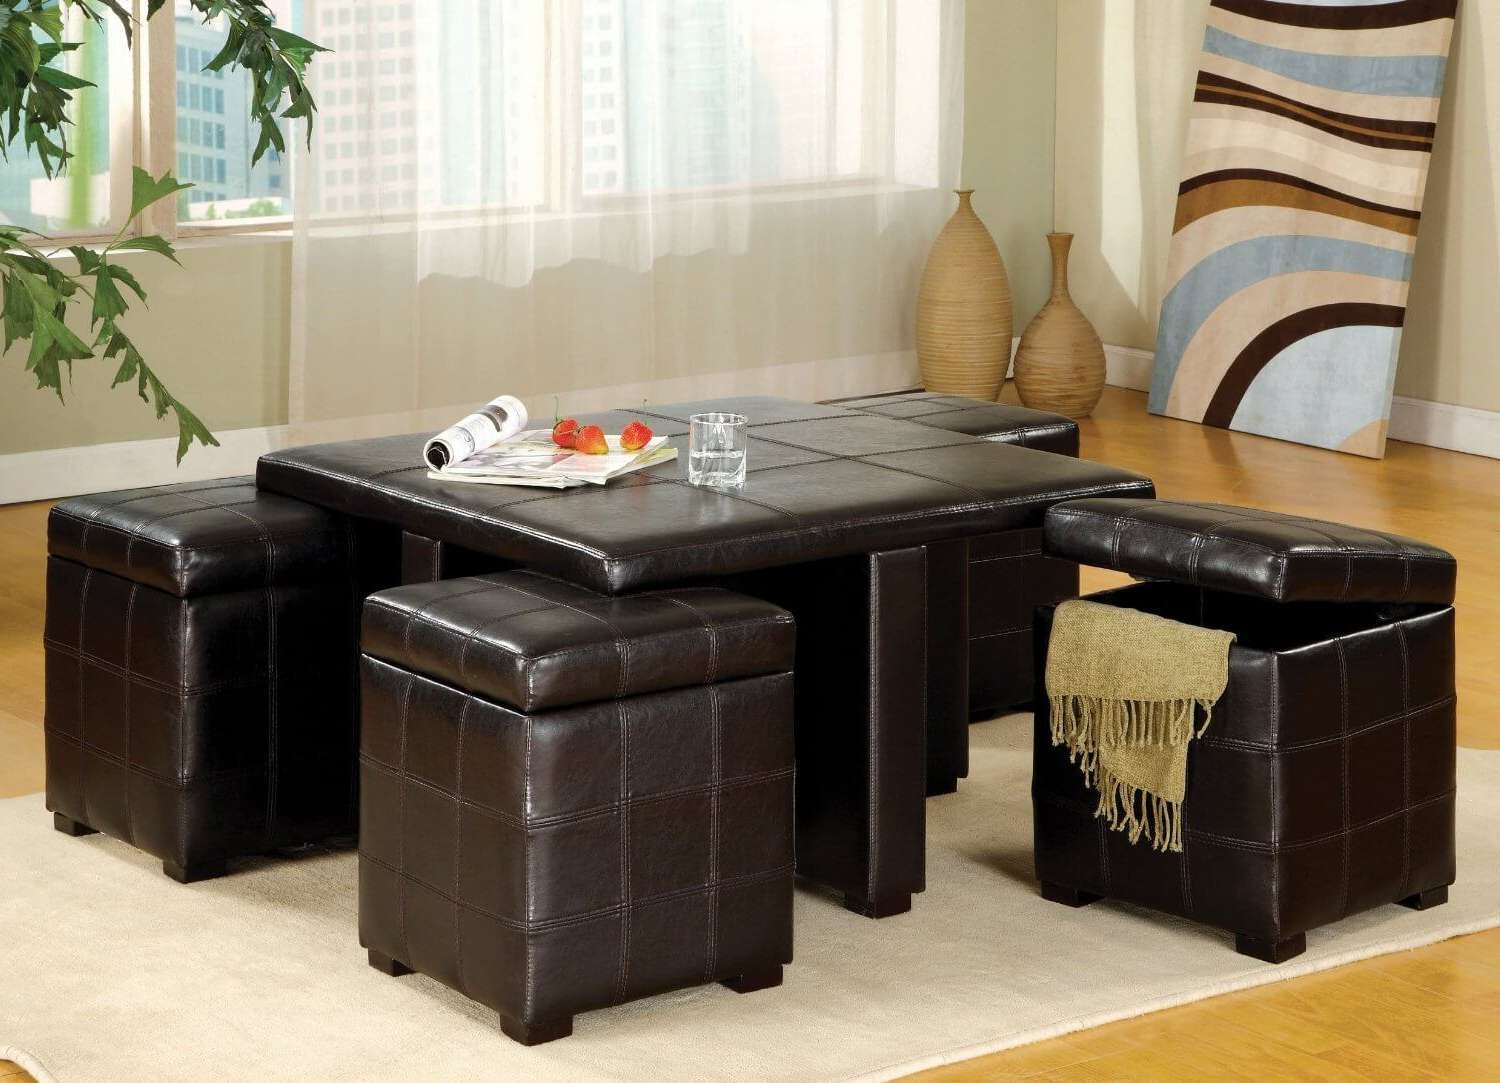 36 Top Brown Leather Ottoman Coffee Tables For Most Recent Brown Leather Ottoman Coffee Tables With Storages (View 1 of 20)